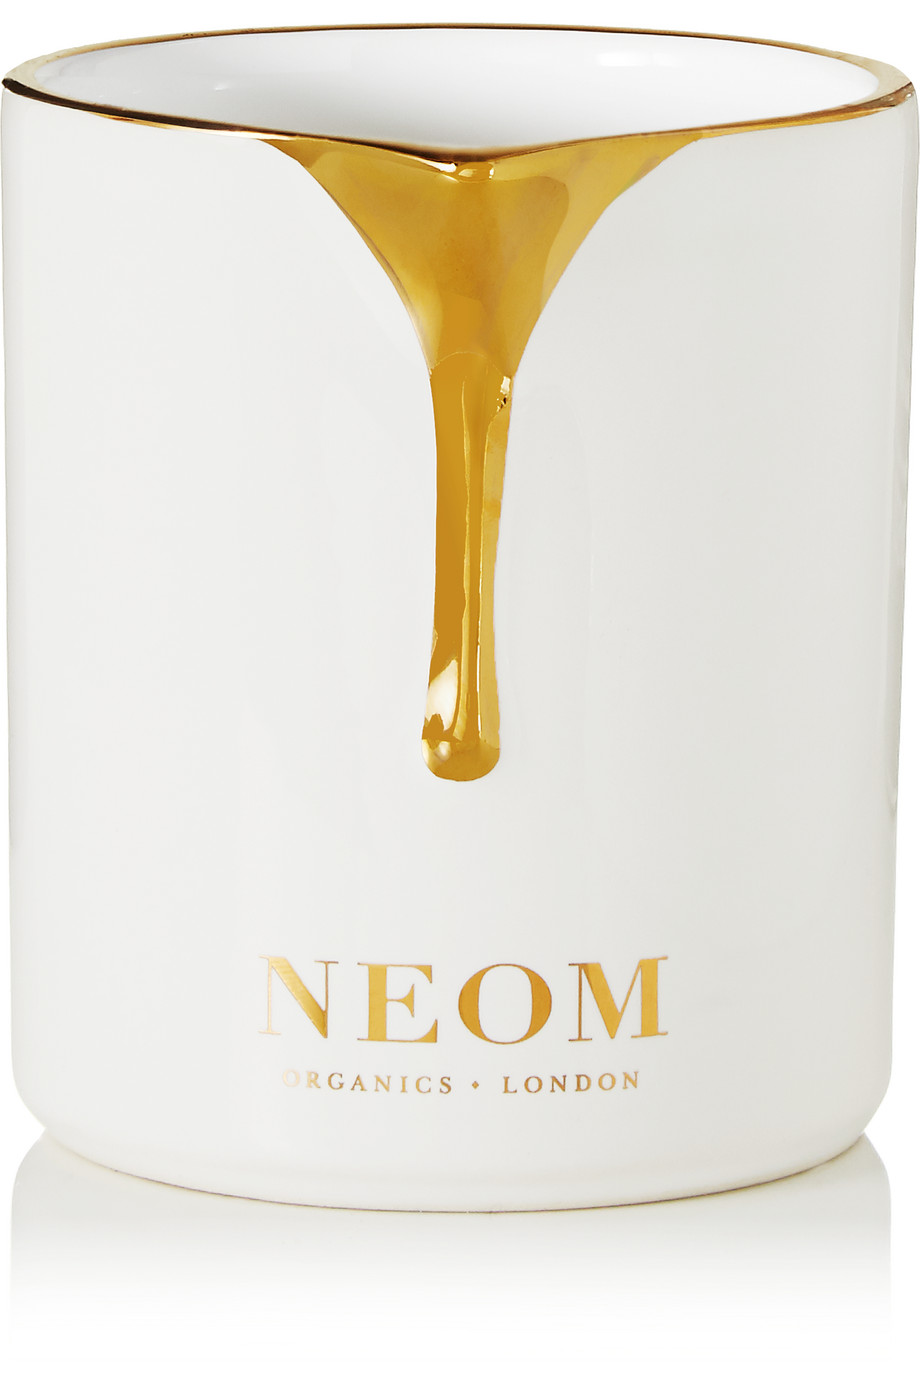 Neom Organics Real Luxury Intensive Skin Treatment Candle, 140g